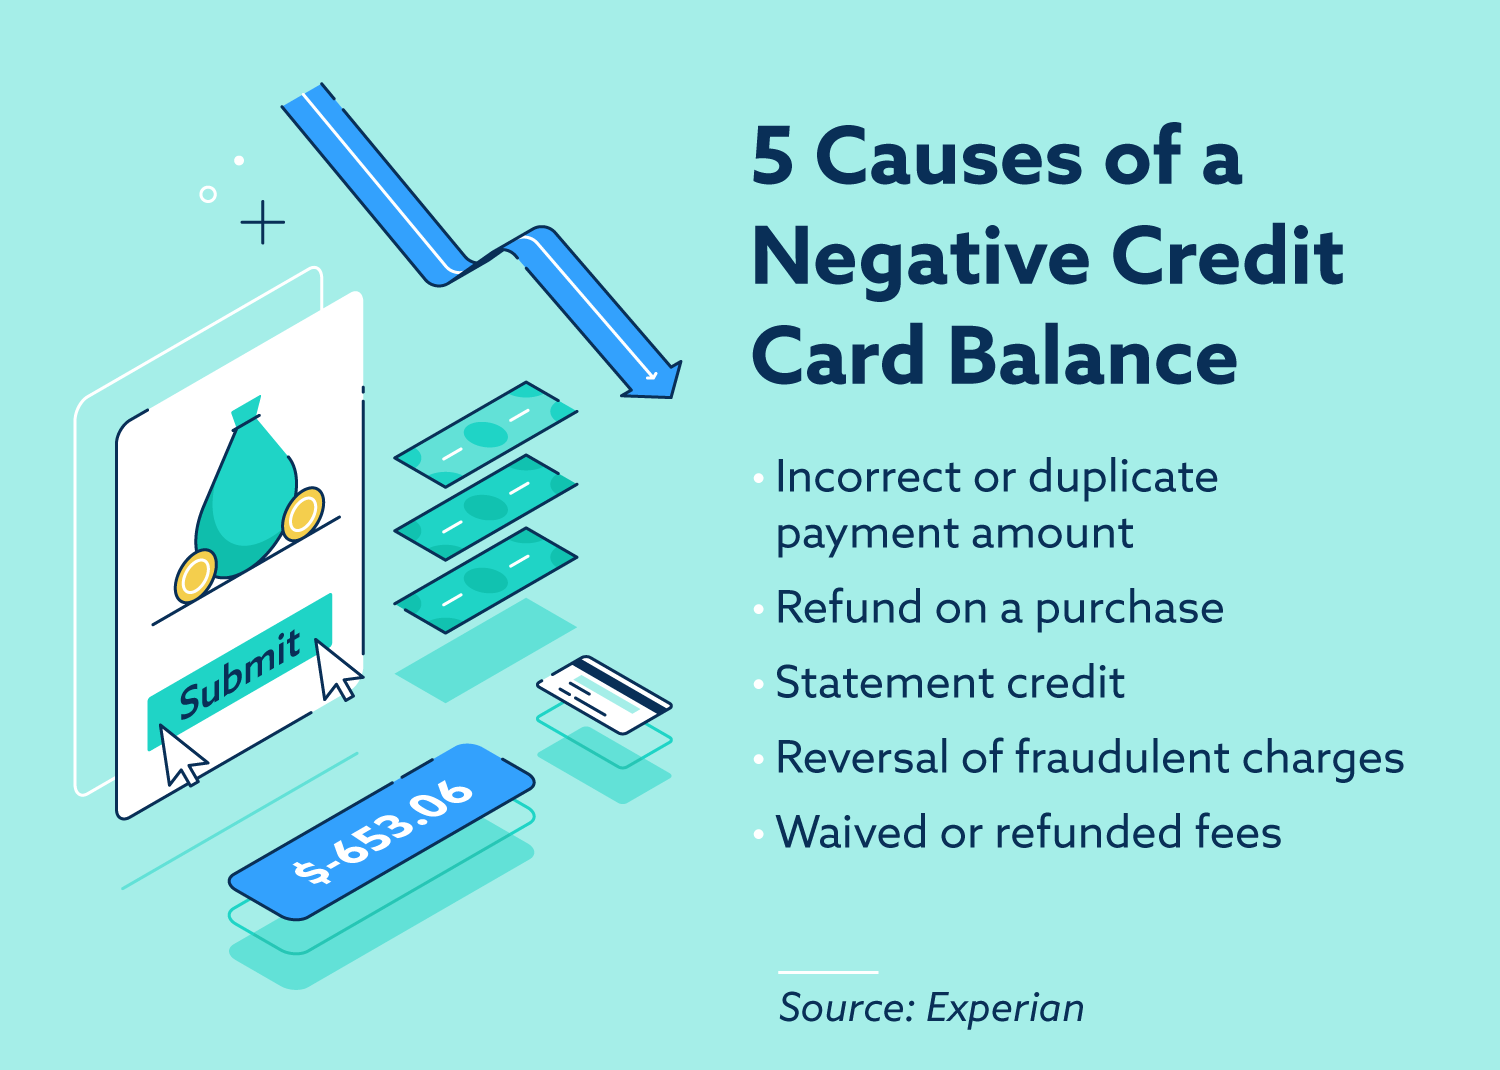 5 causes of a negative credit card balance.